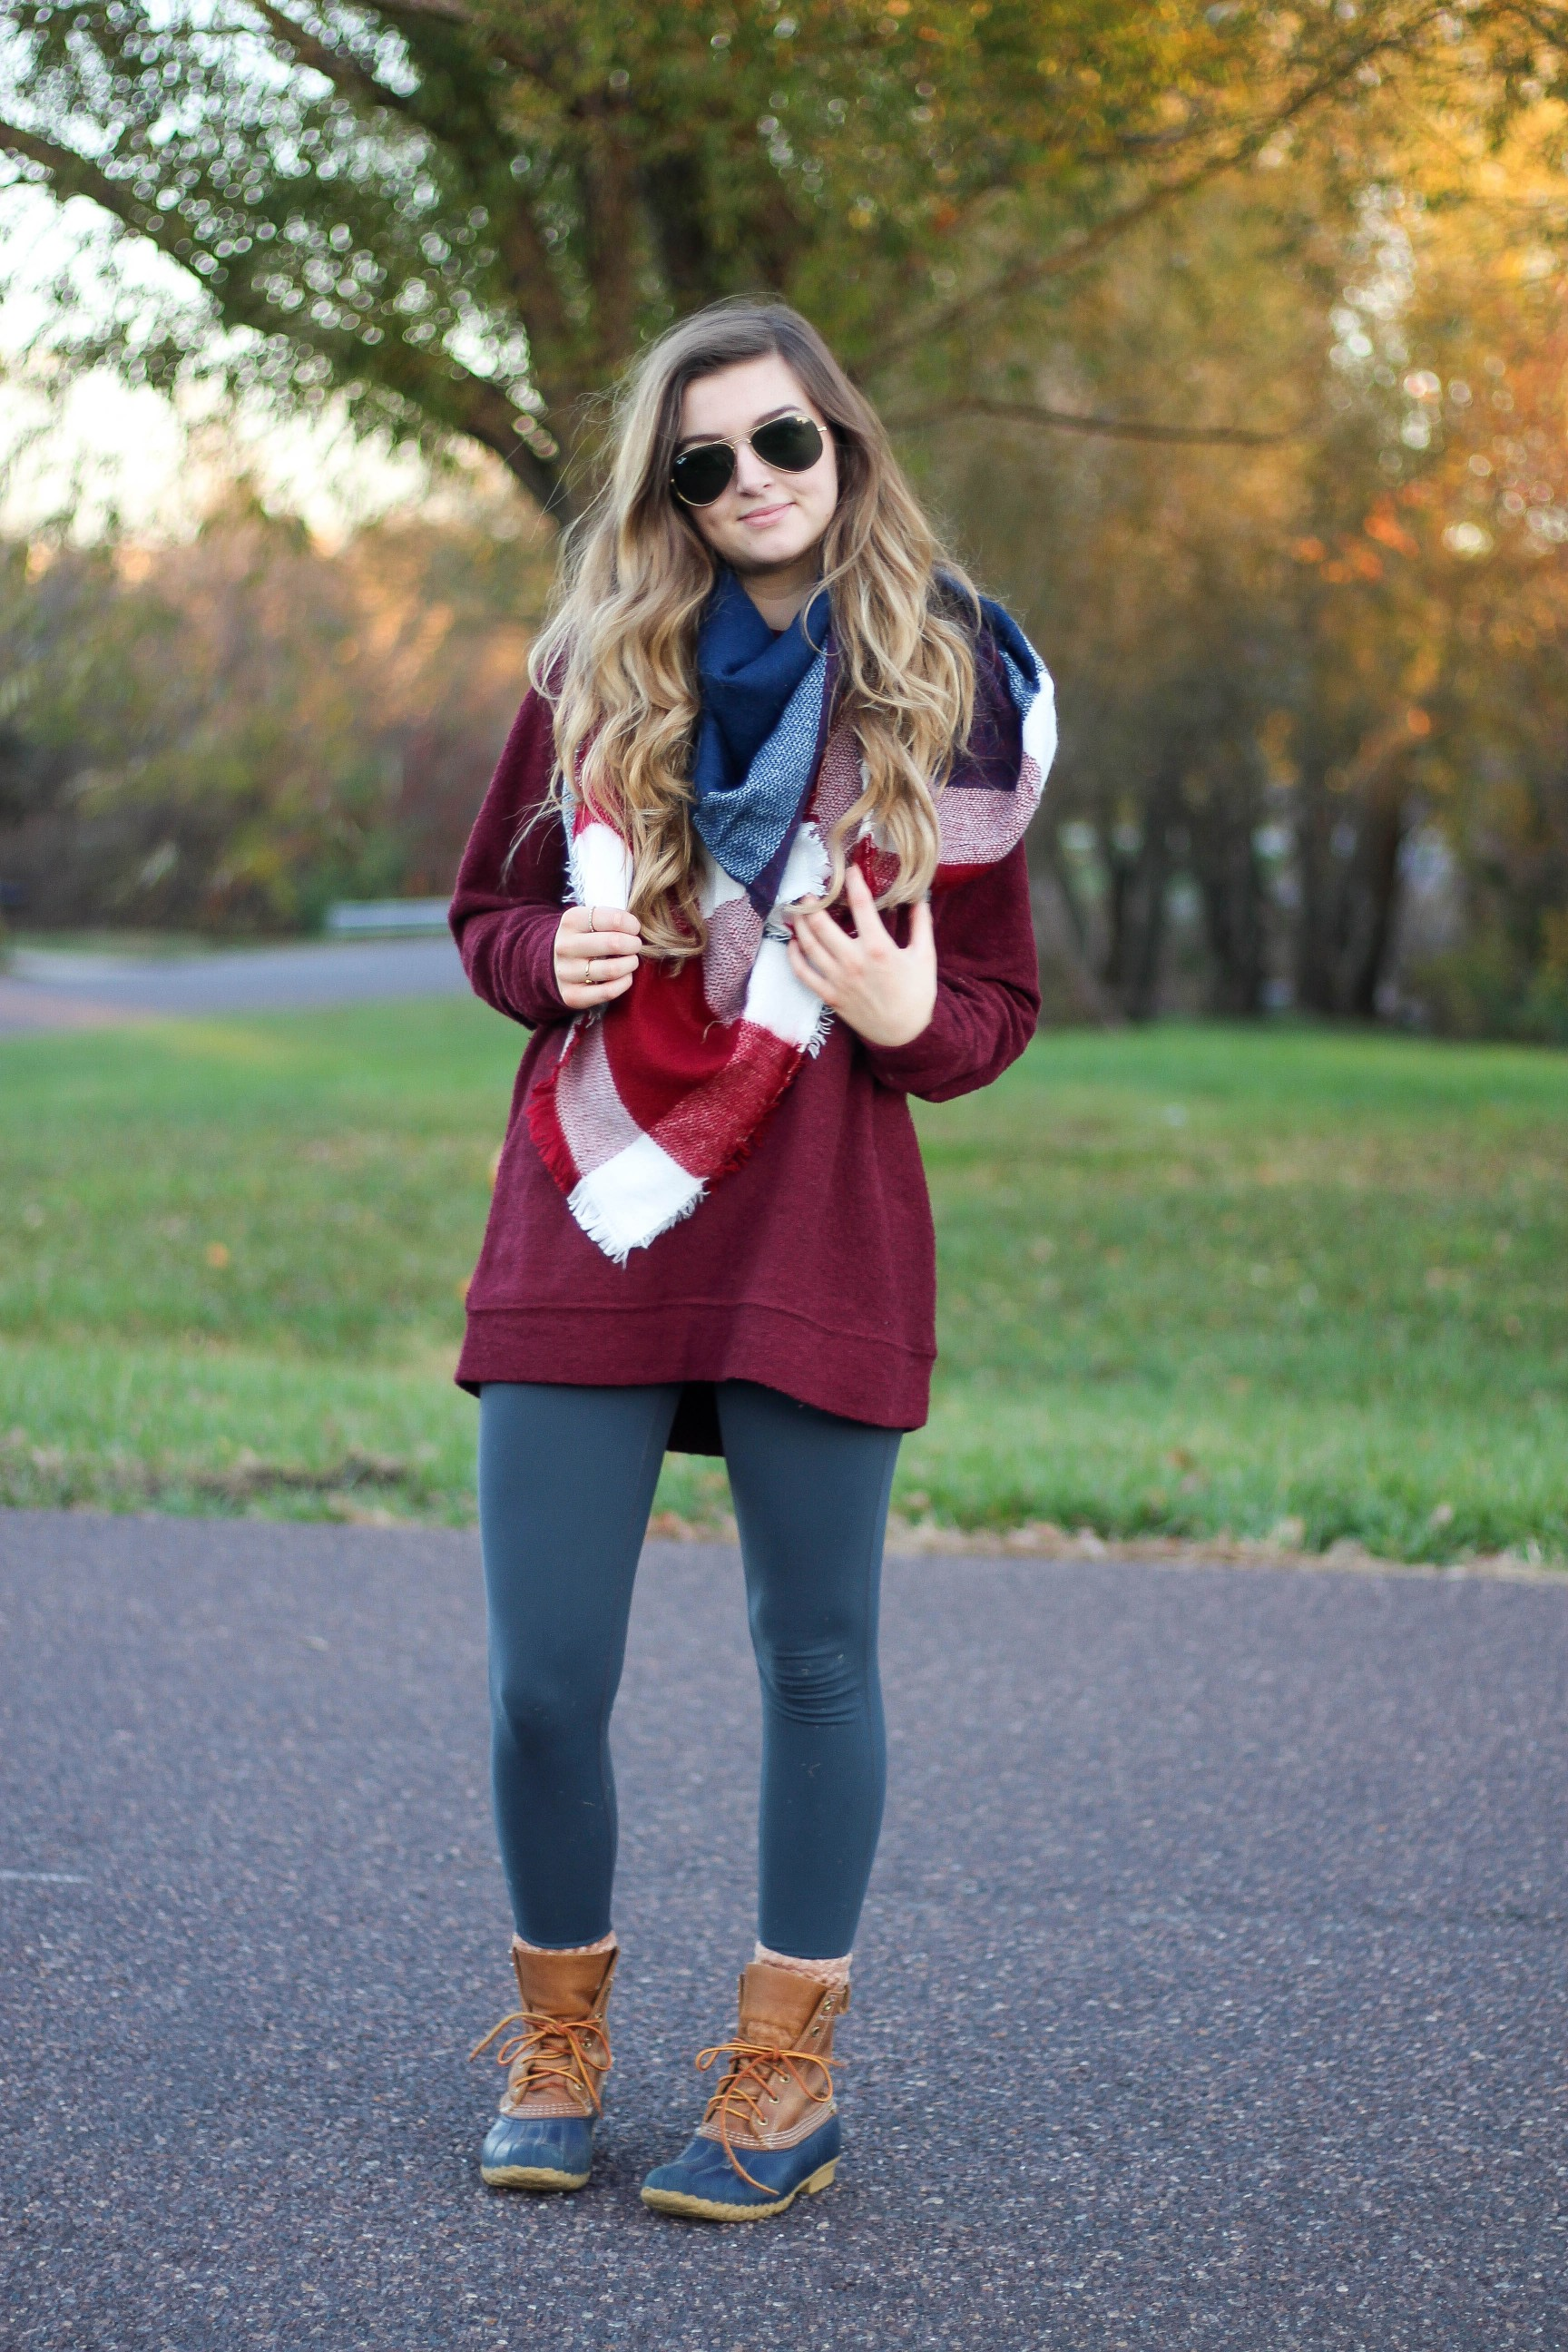 Blanket scarf DISCOUNT CODE and Custom fleece sweatshirt and ll bean duck boots for fall and winter fashion outfit of the day is up on dailydoseofcharm.com daily dose of charm by lauren lindmark